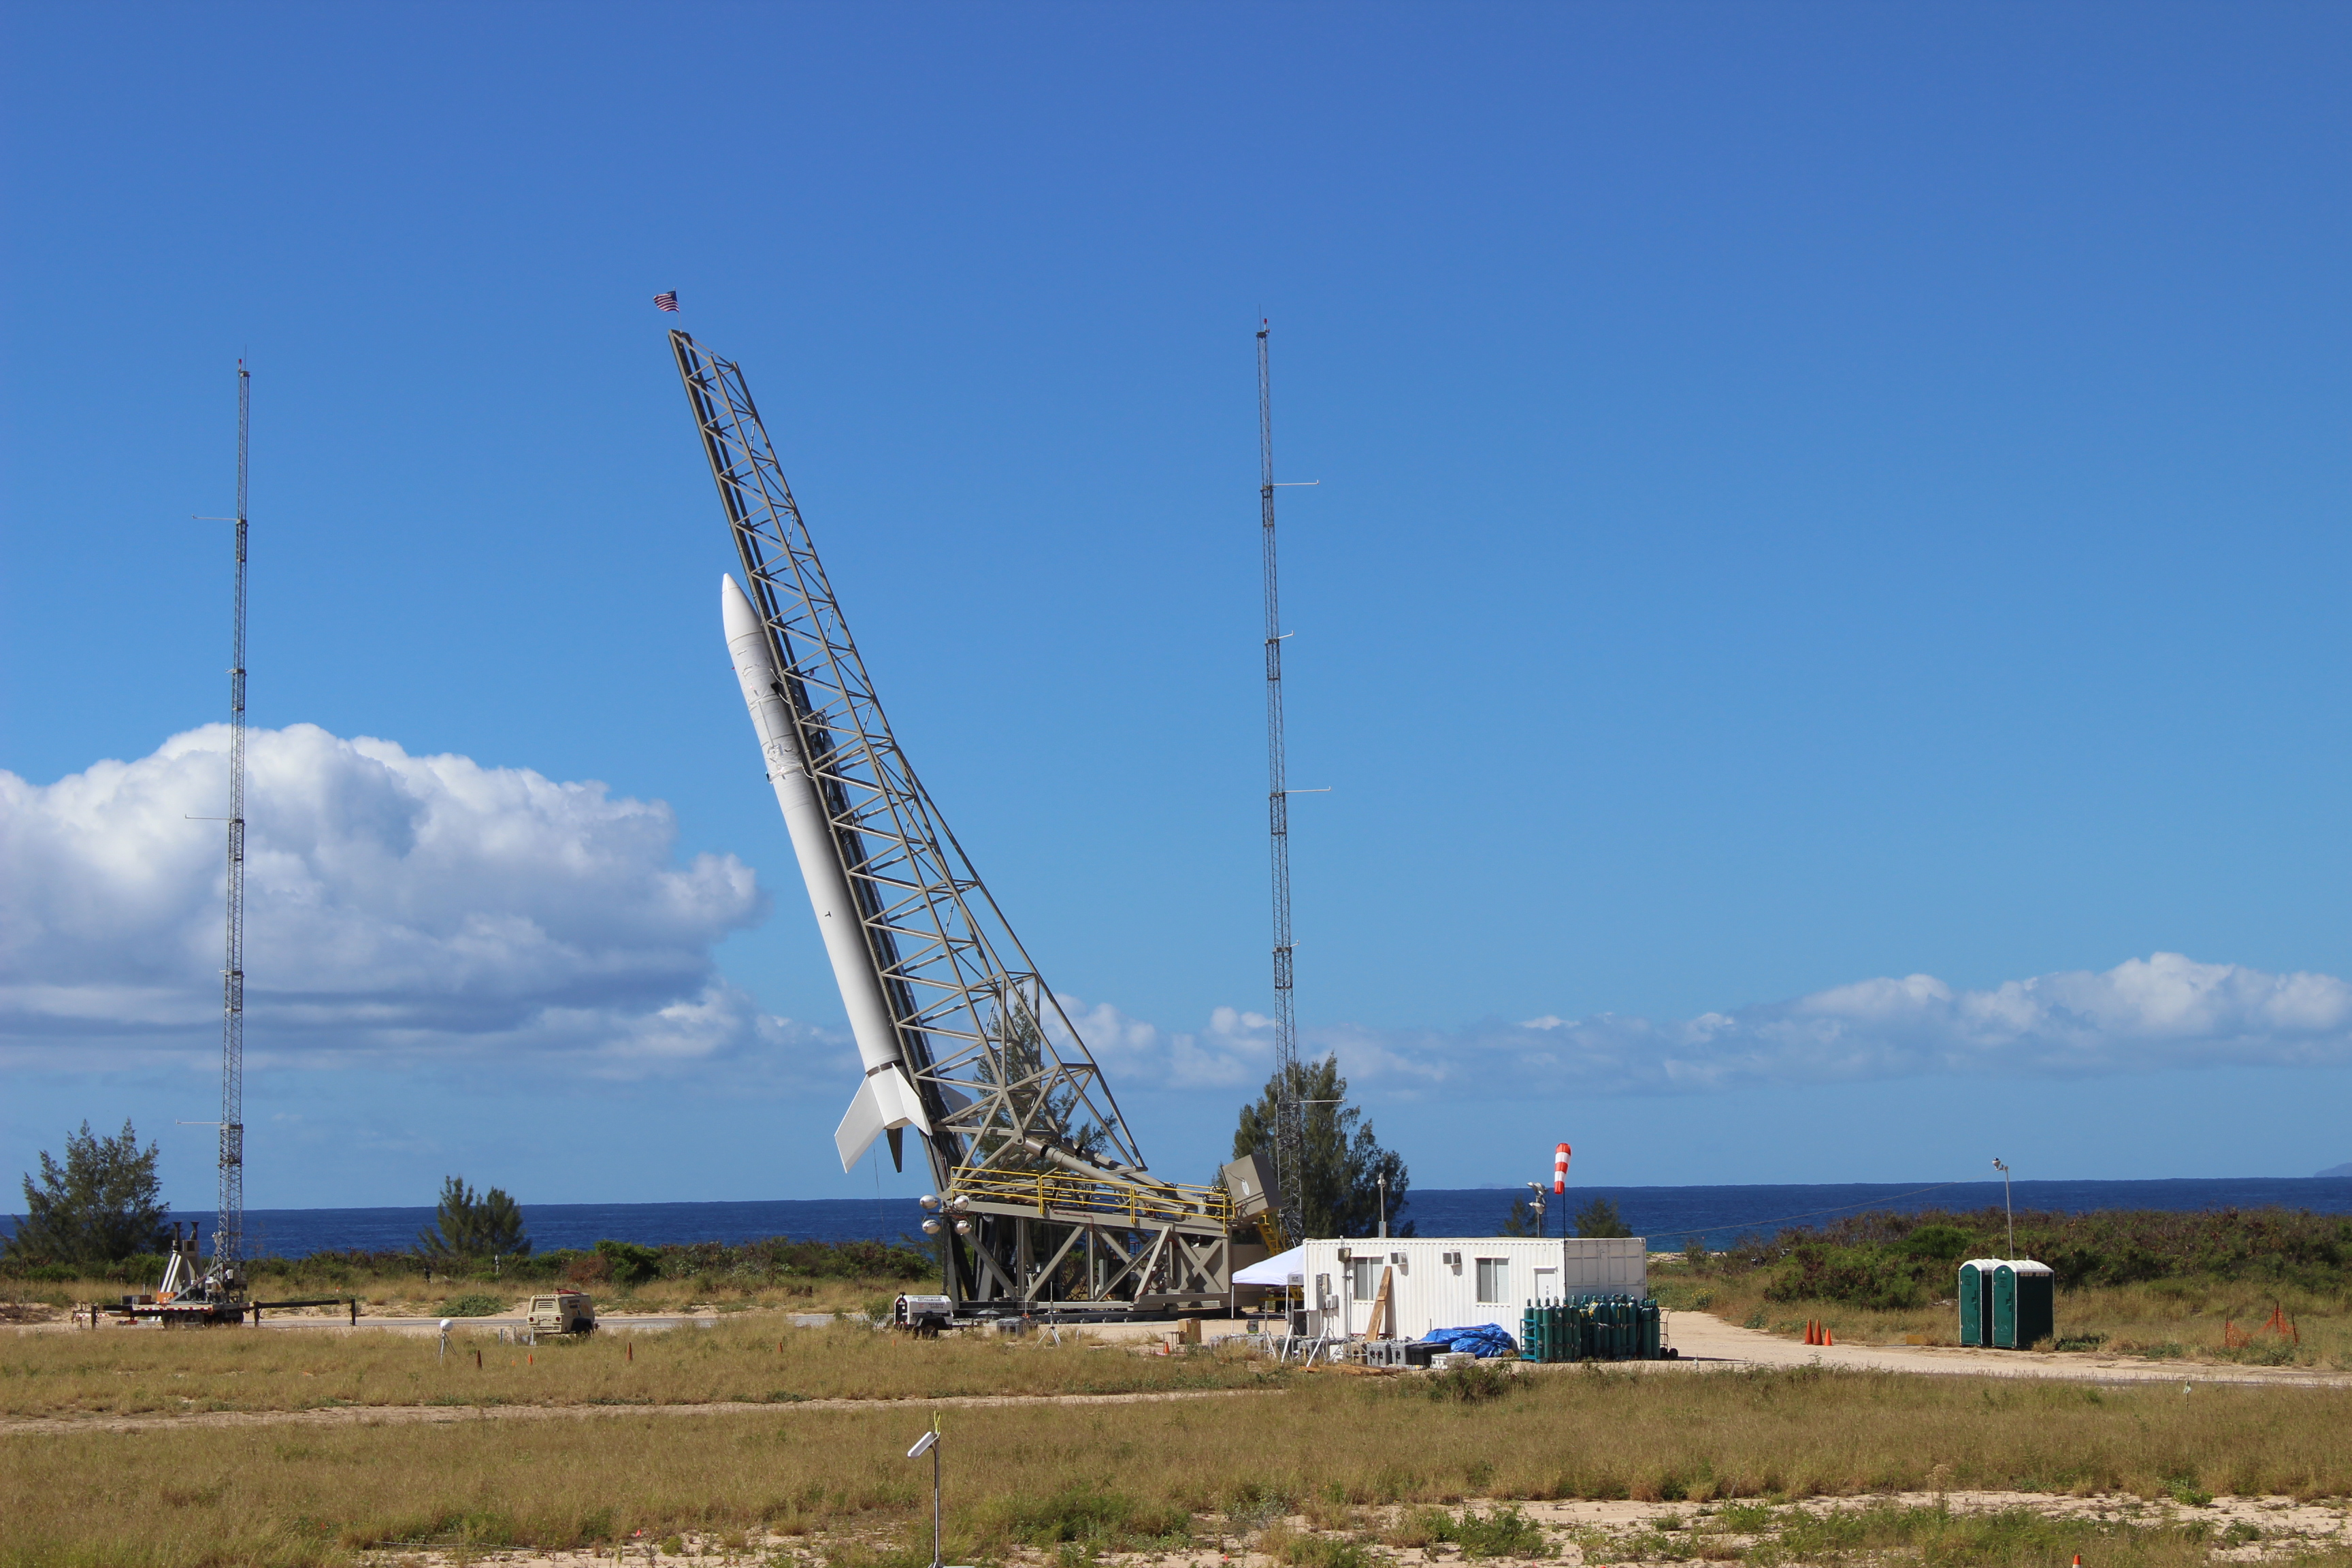 The Super Strypi launch vehicle is fastened to a rail launch system at the Pacific Missile Range Facility in Kauai, Hawaii. Credit: U.S. Air Force